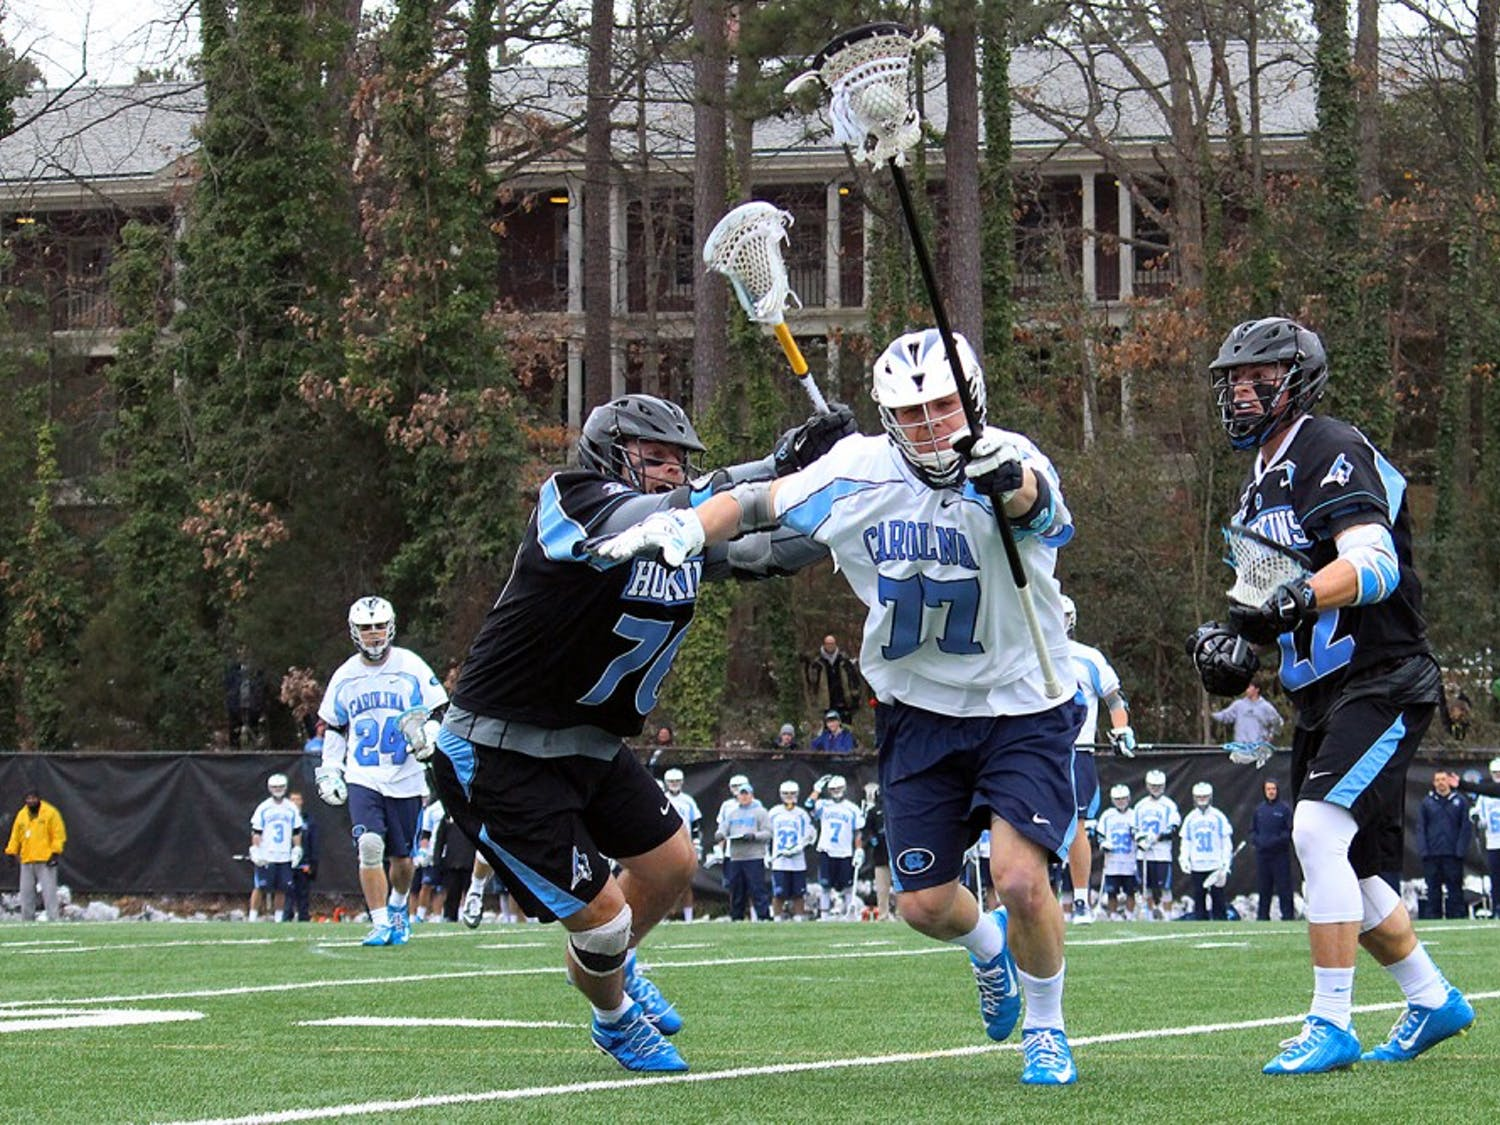 Junior defenseman Zach Powers (77) carries the ball down the field.